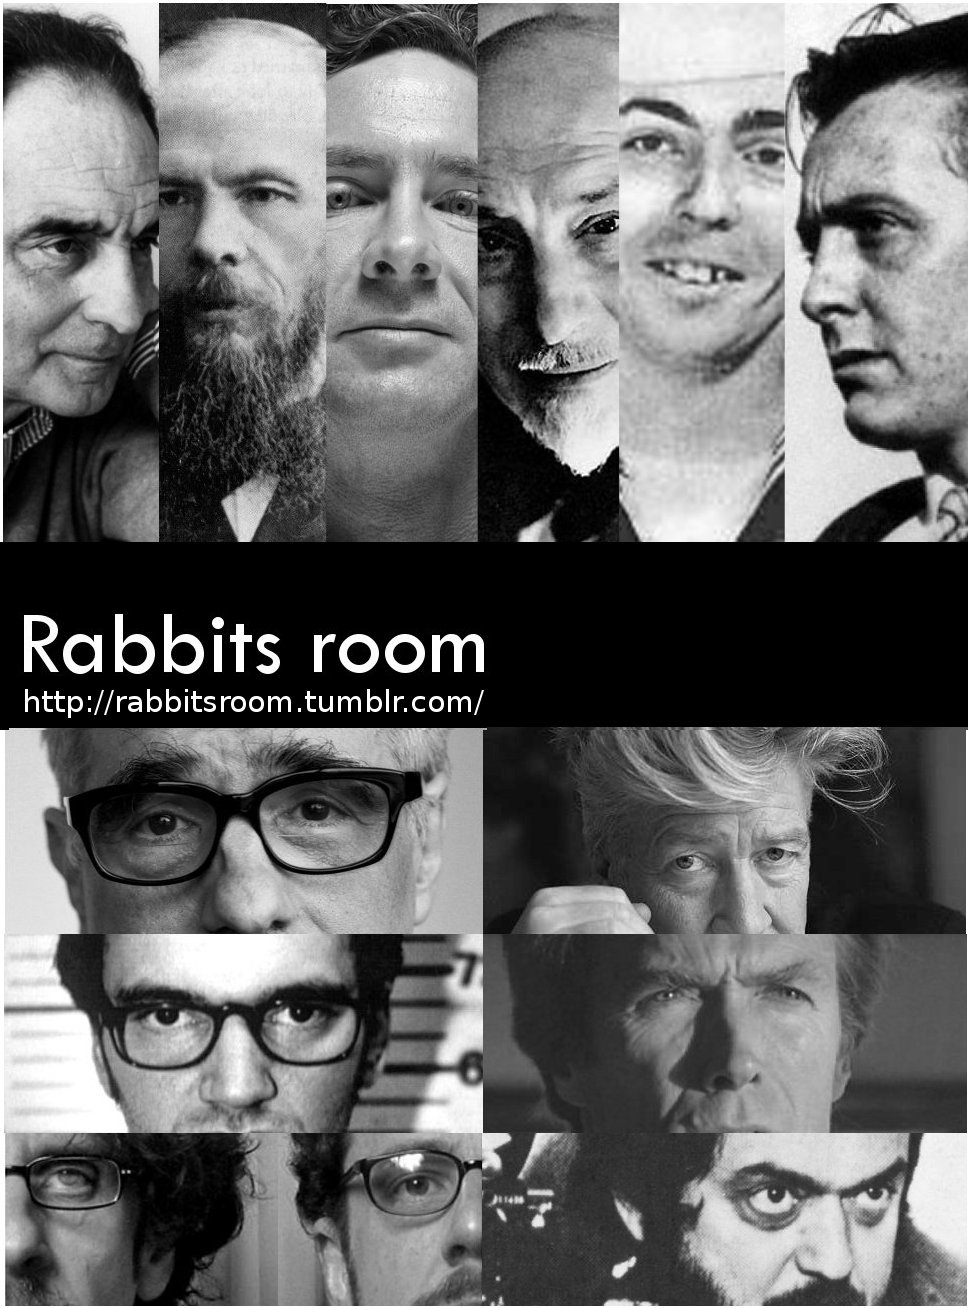 Rabbits room